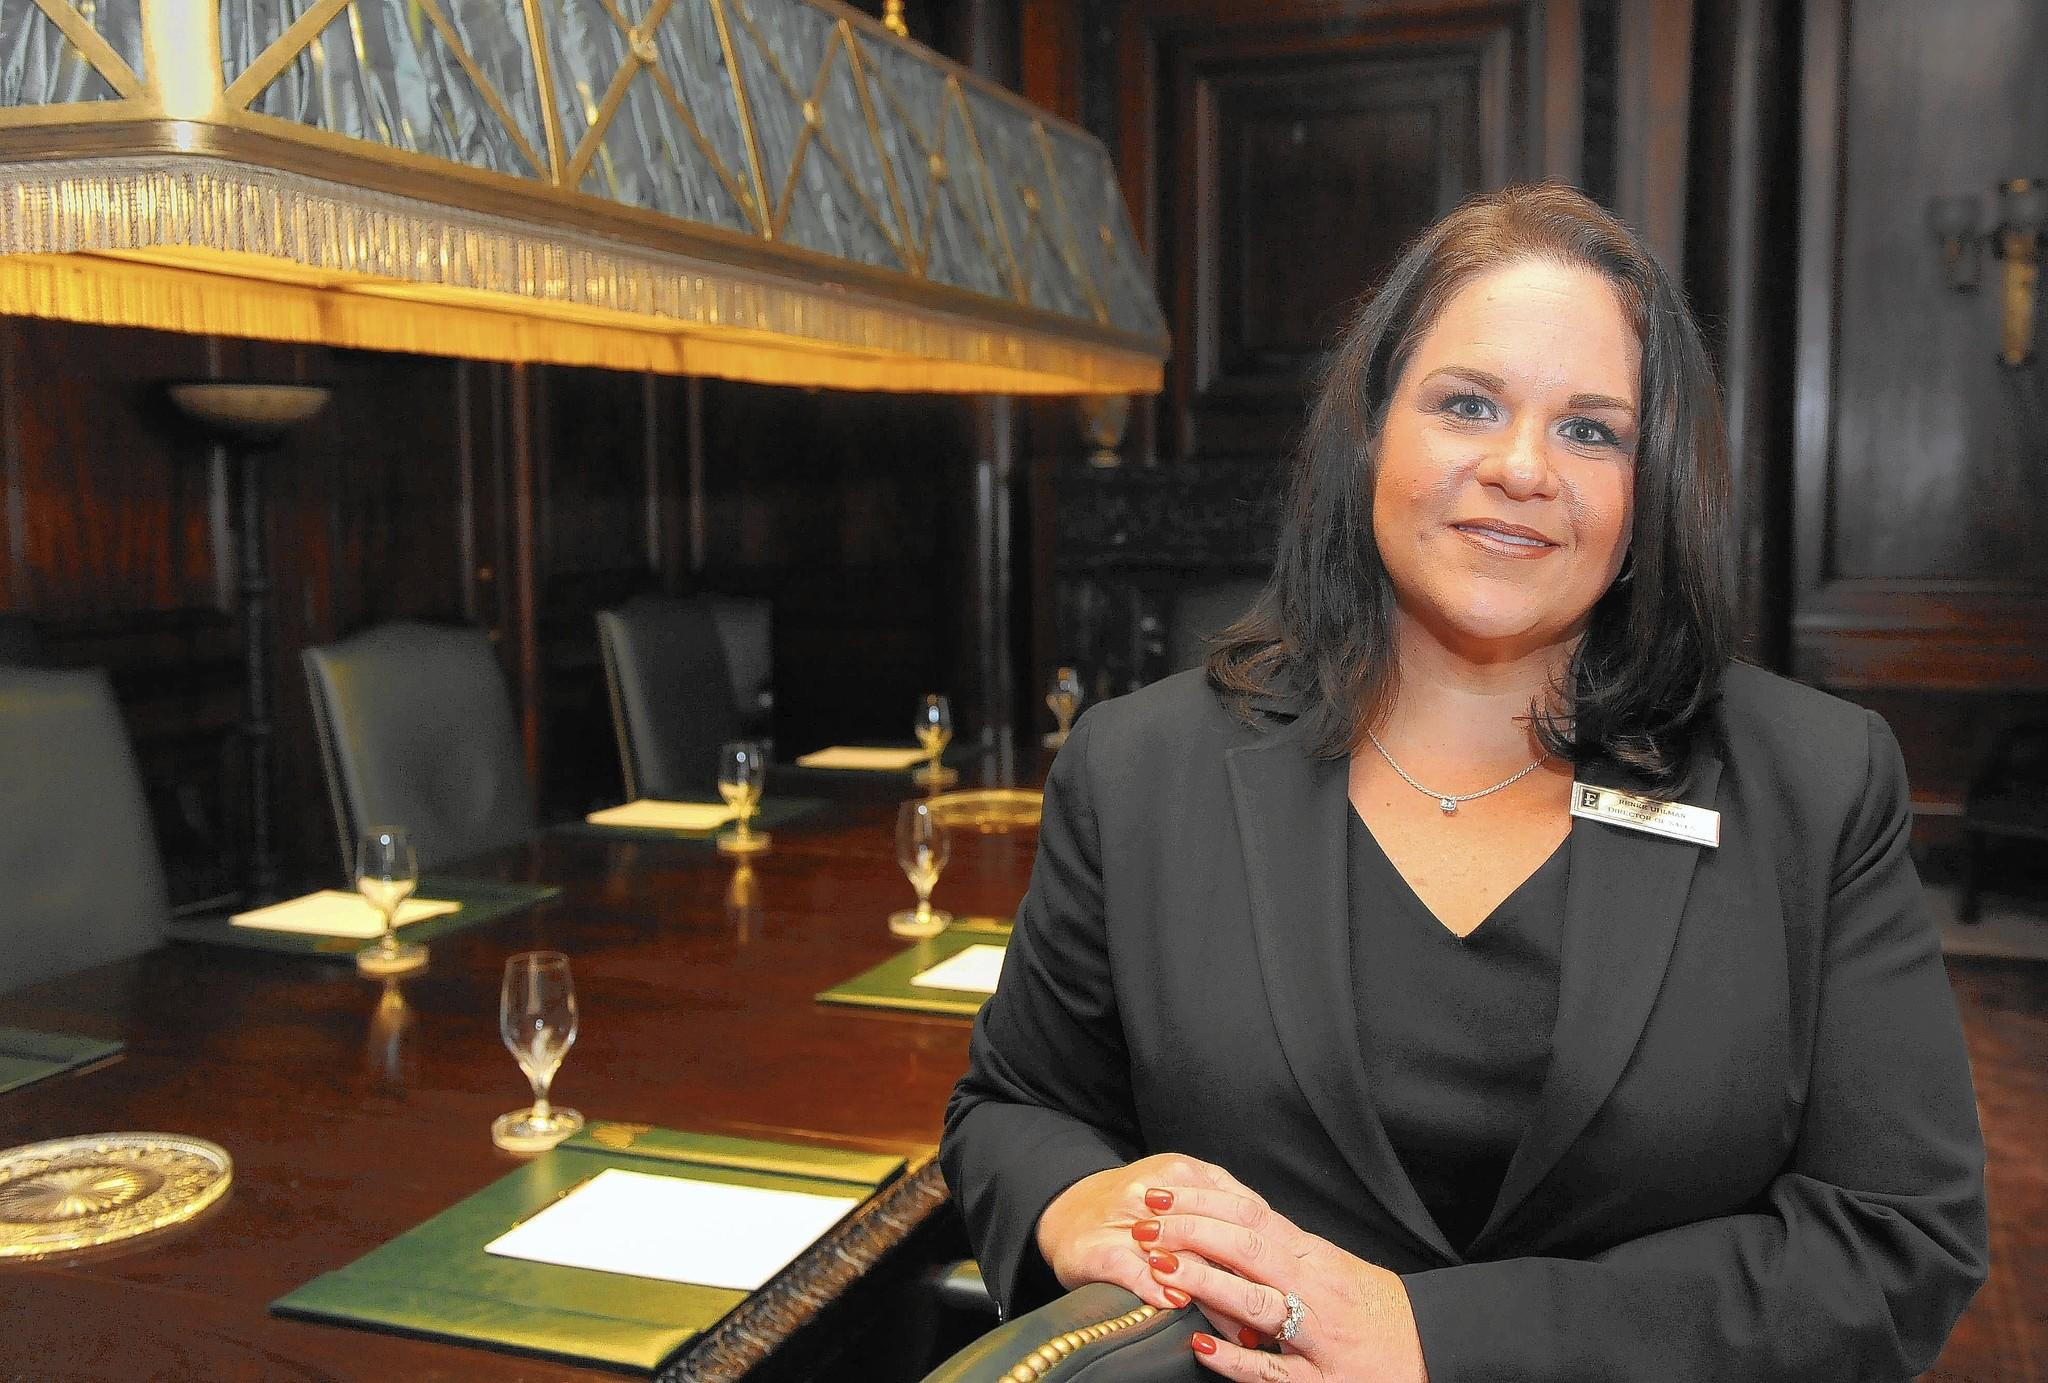 Renee Uhlman, director of sales and marketing at Embassy Suites Downtown Baltimore Inner Harbor, in the Board Room of the hotel.